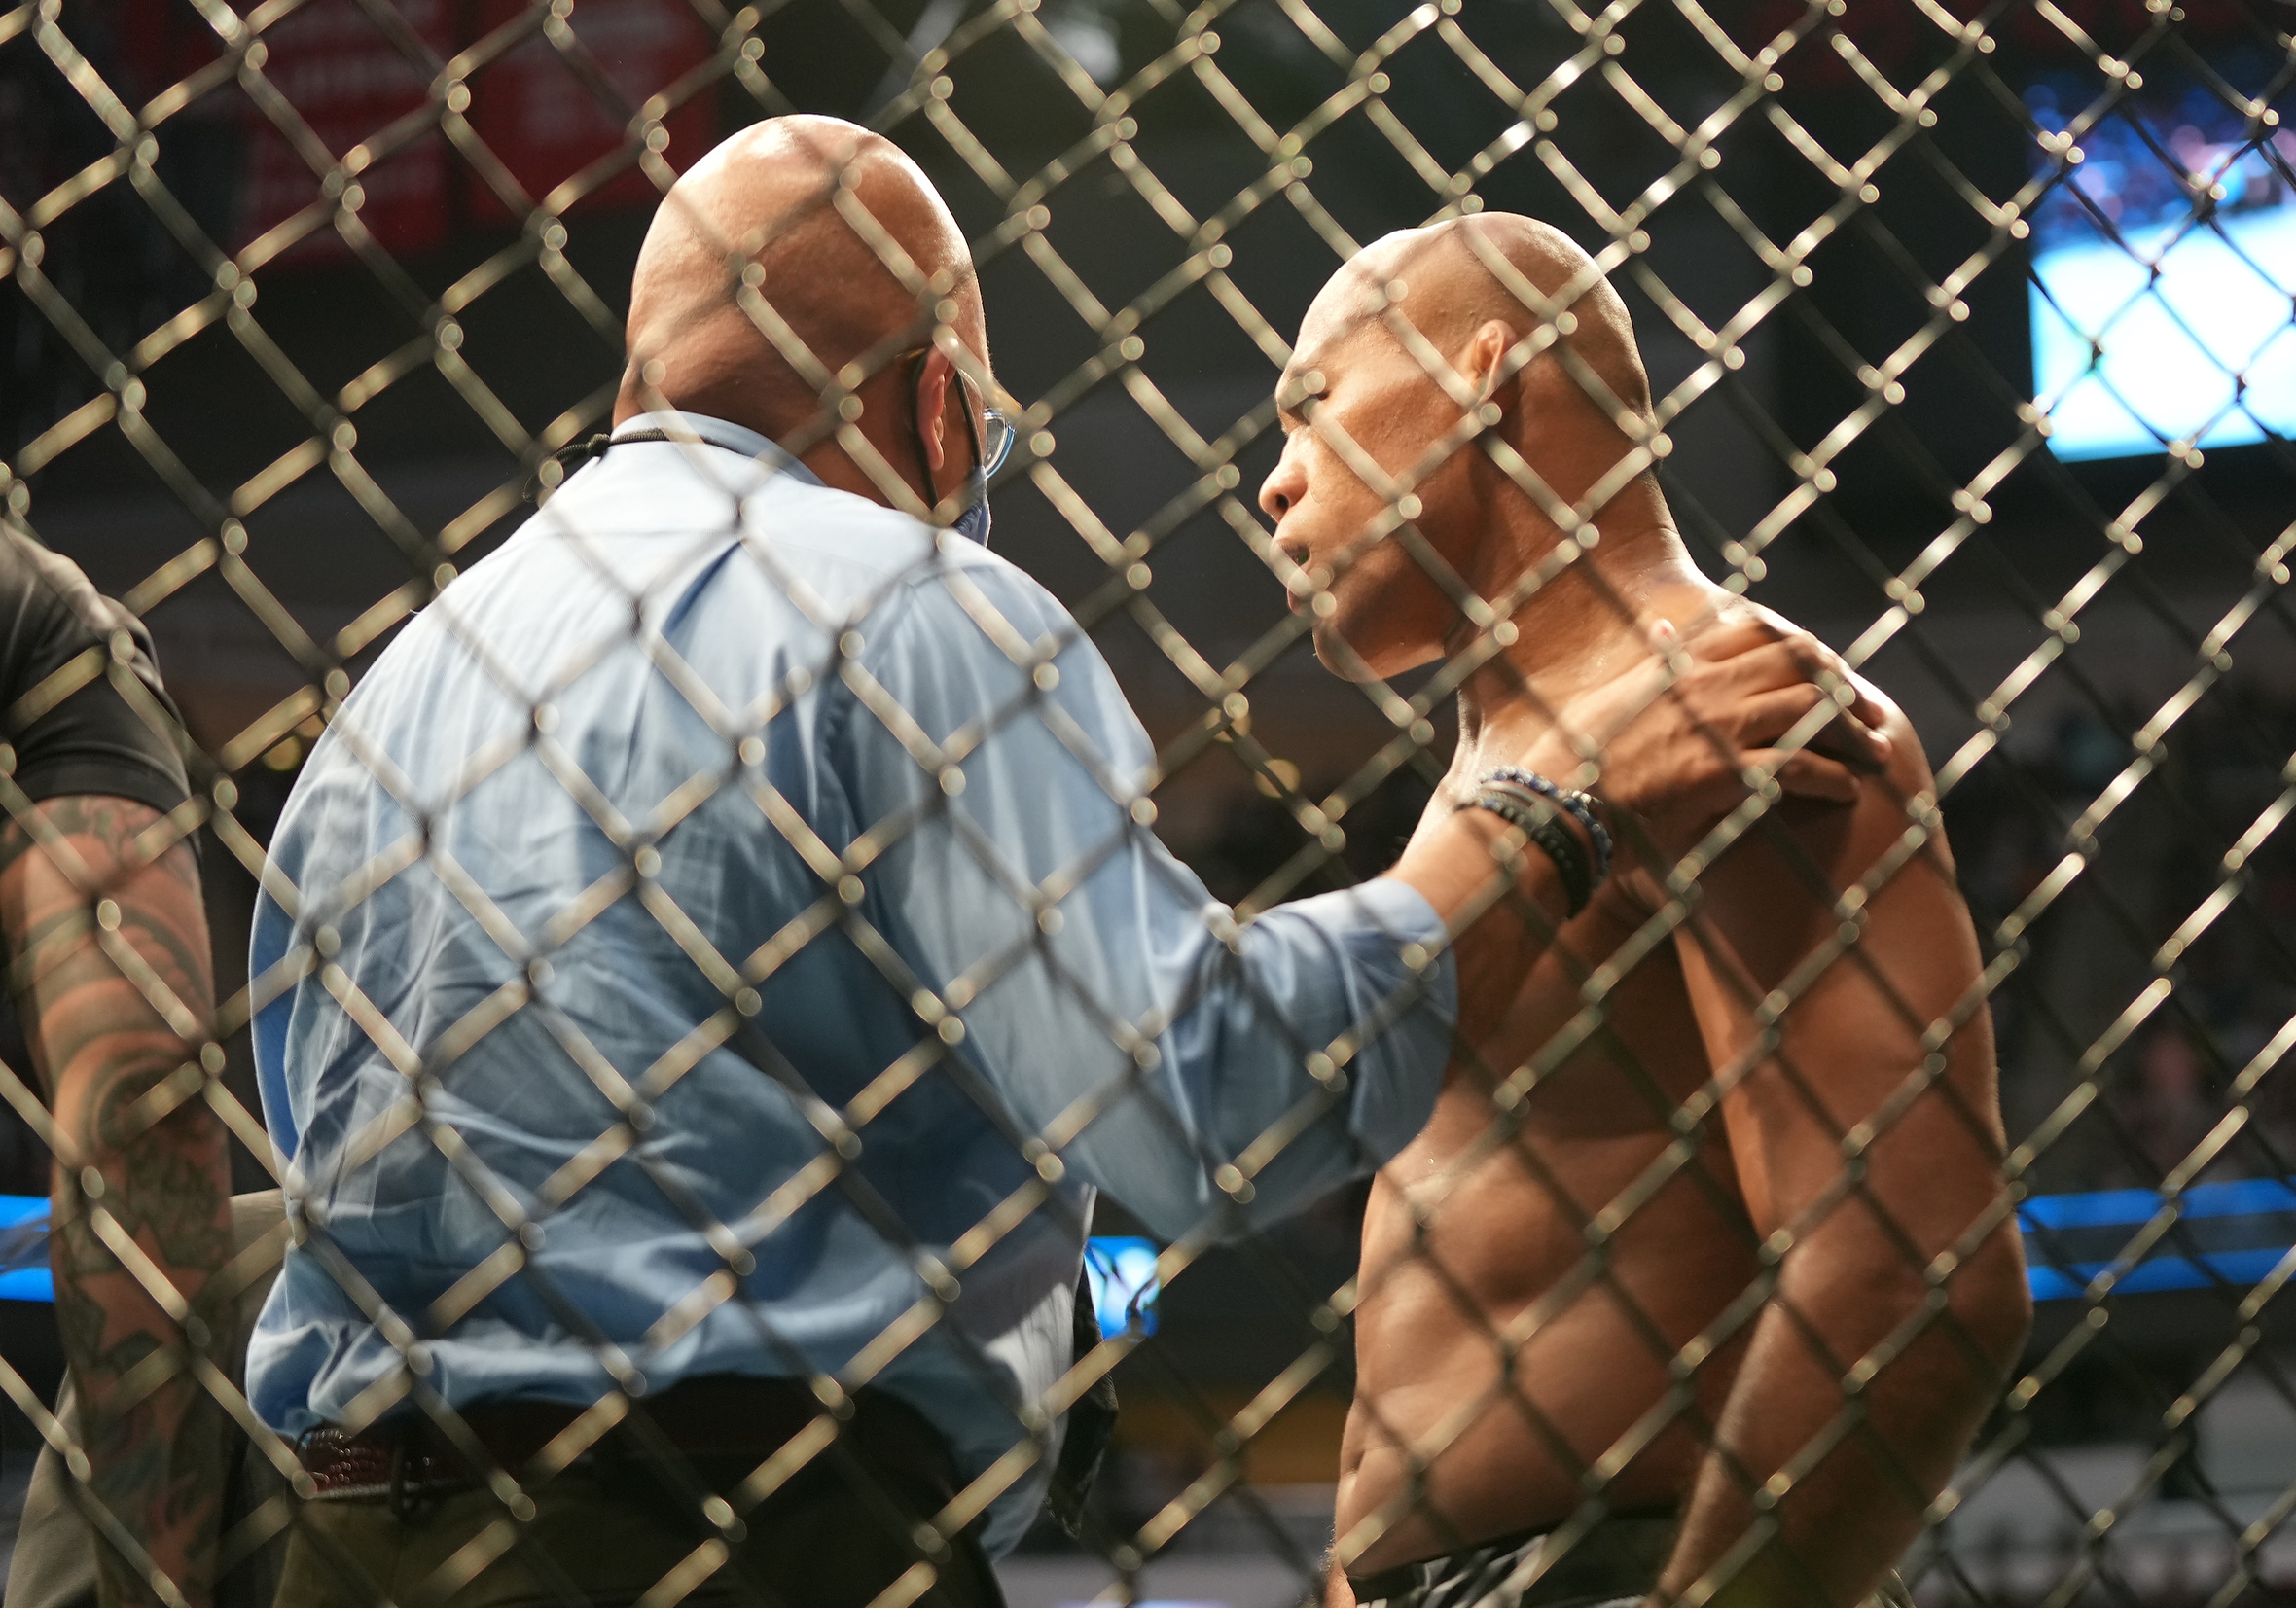 Jacare Souza stands tall after suffering a broken arm versus Andre Muniz at UFC 262 in Houston, Texas.